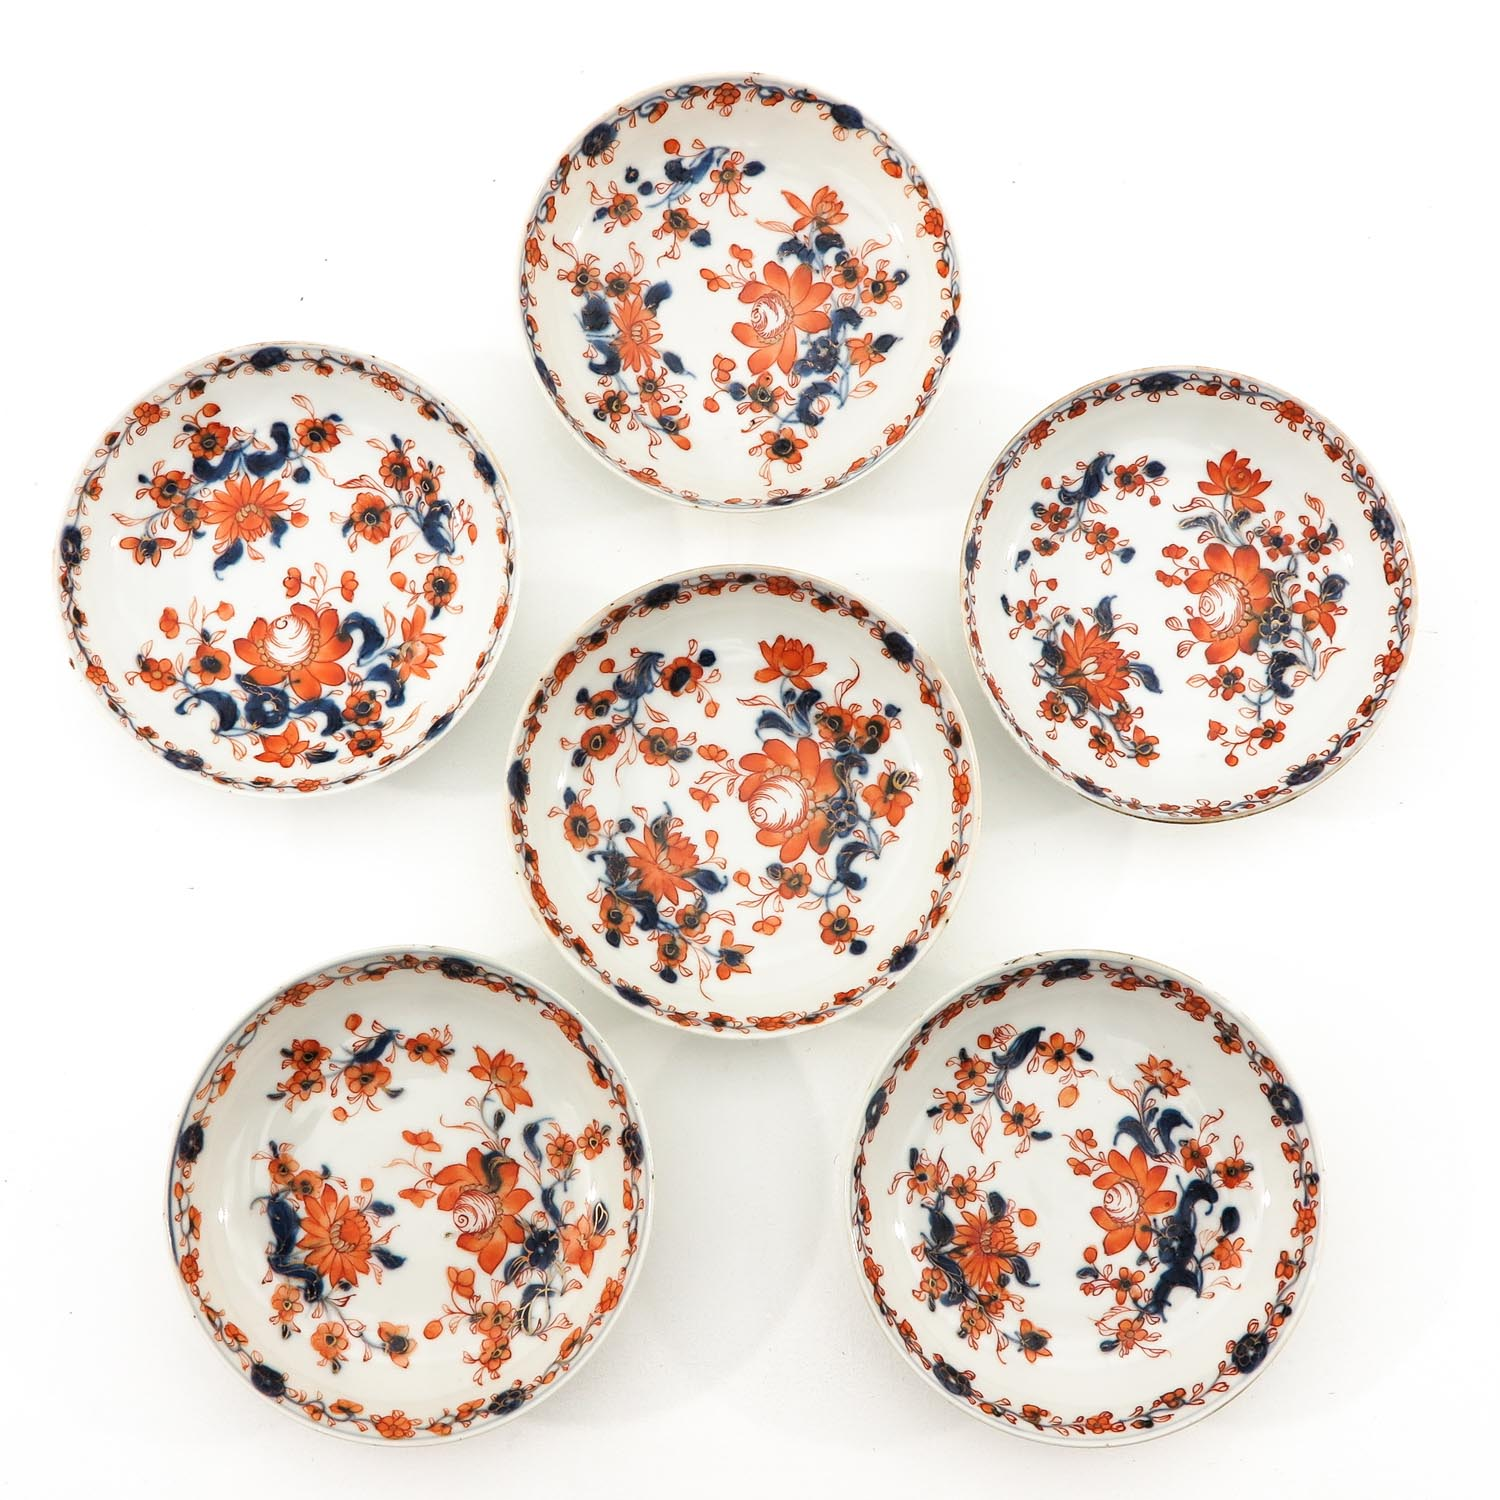 A Collection of Imari Cups and Saucers - Image 5 of 10